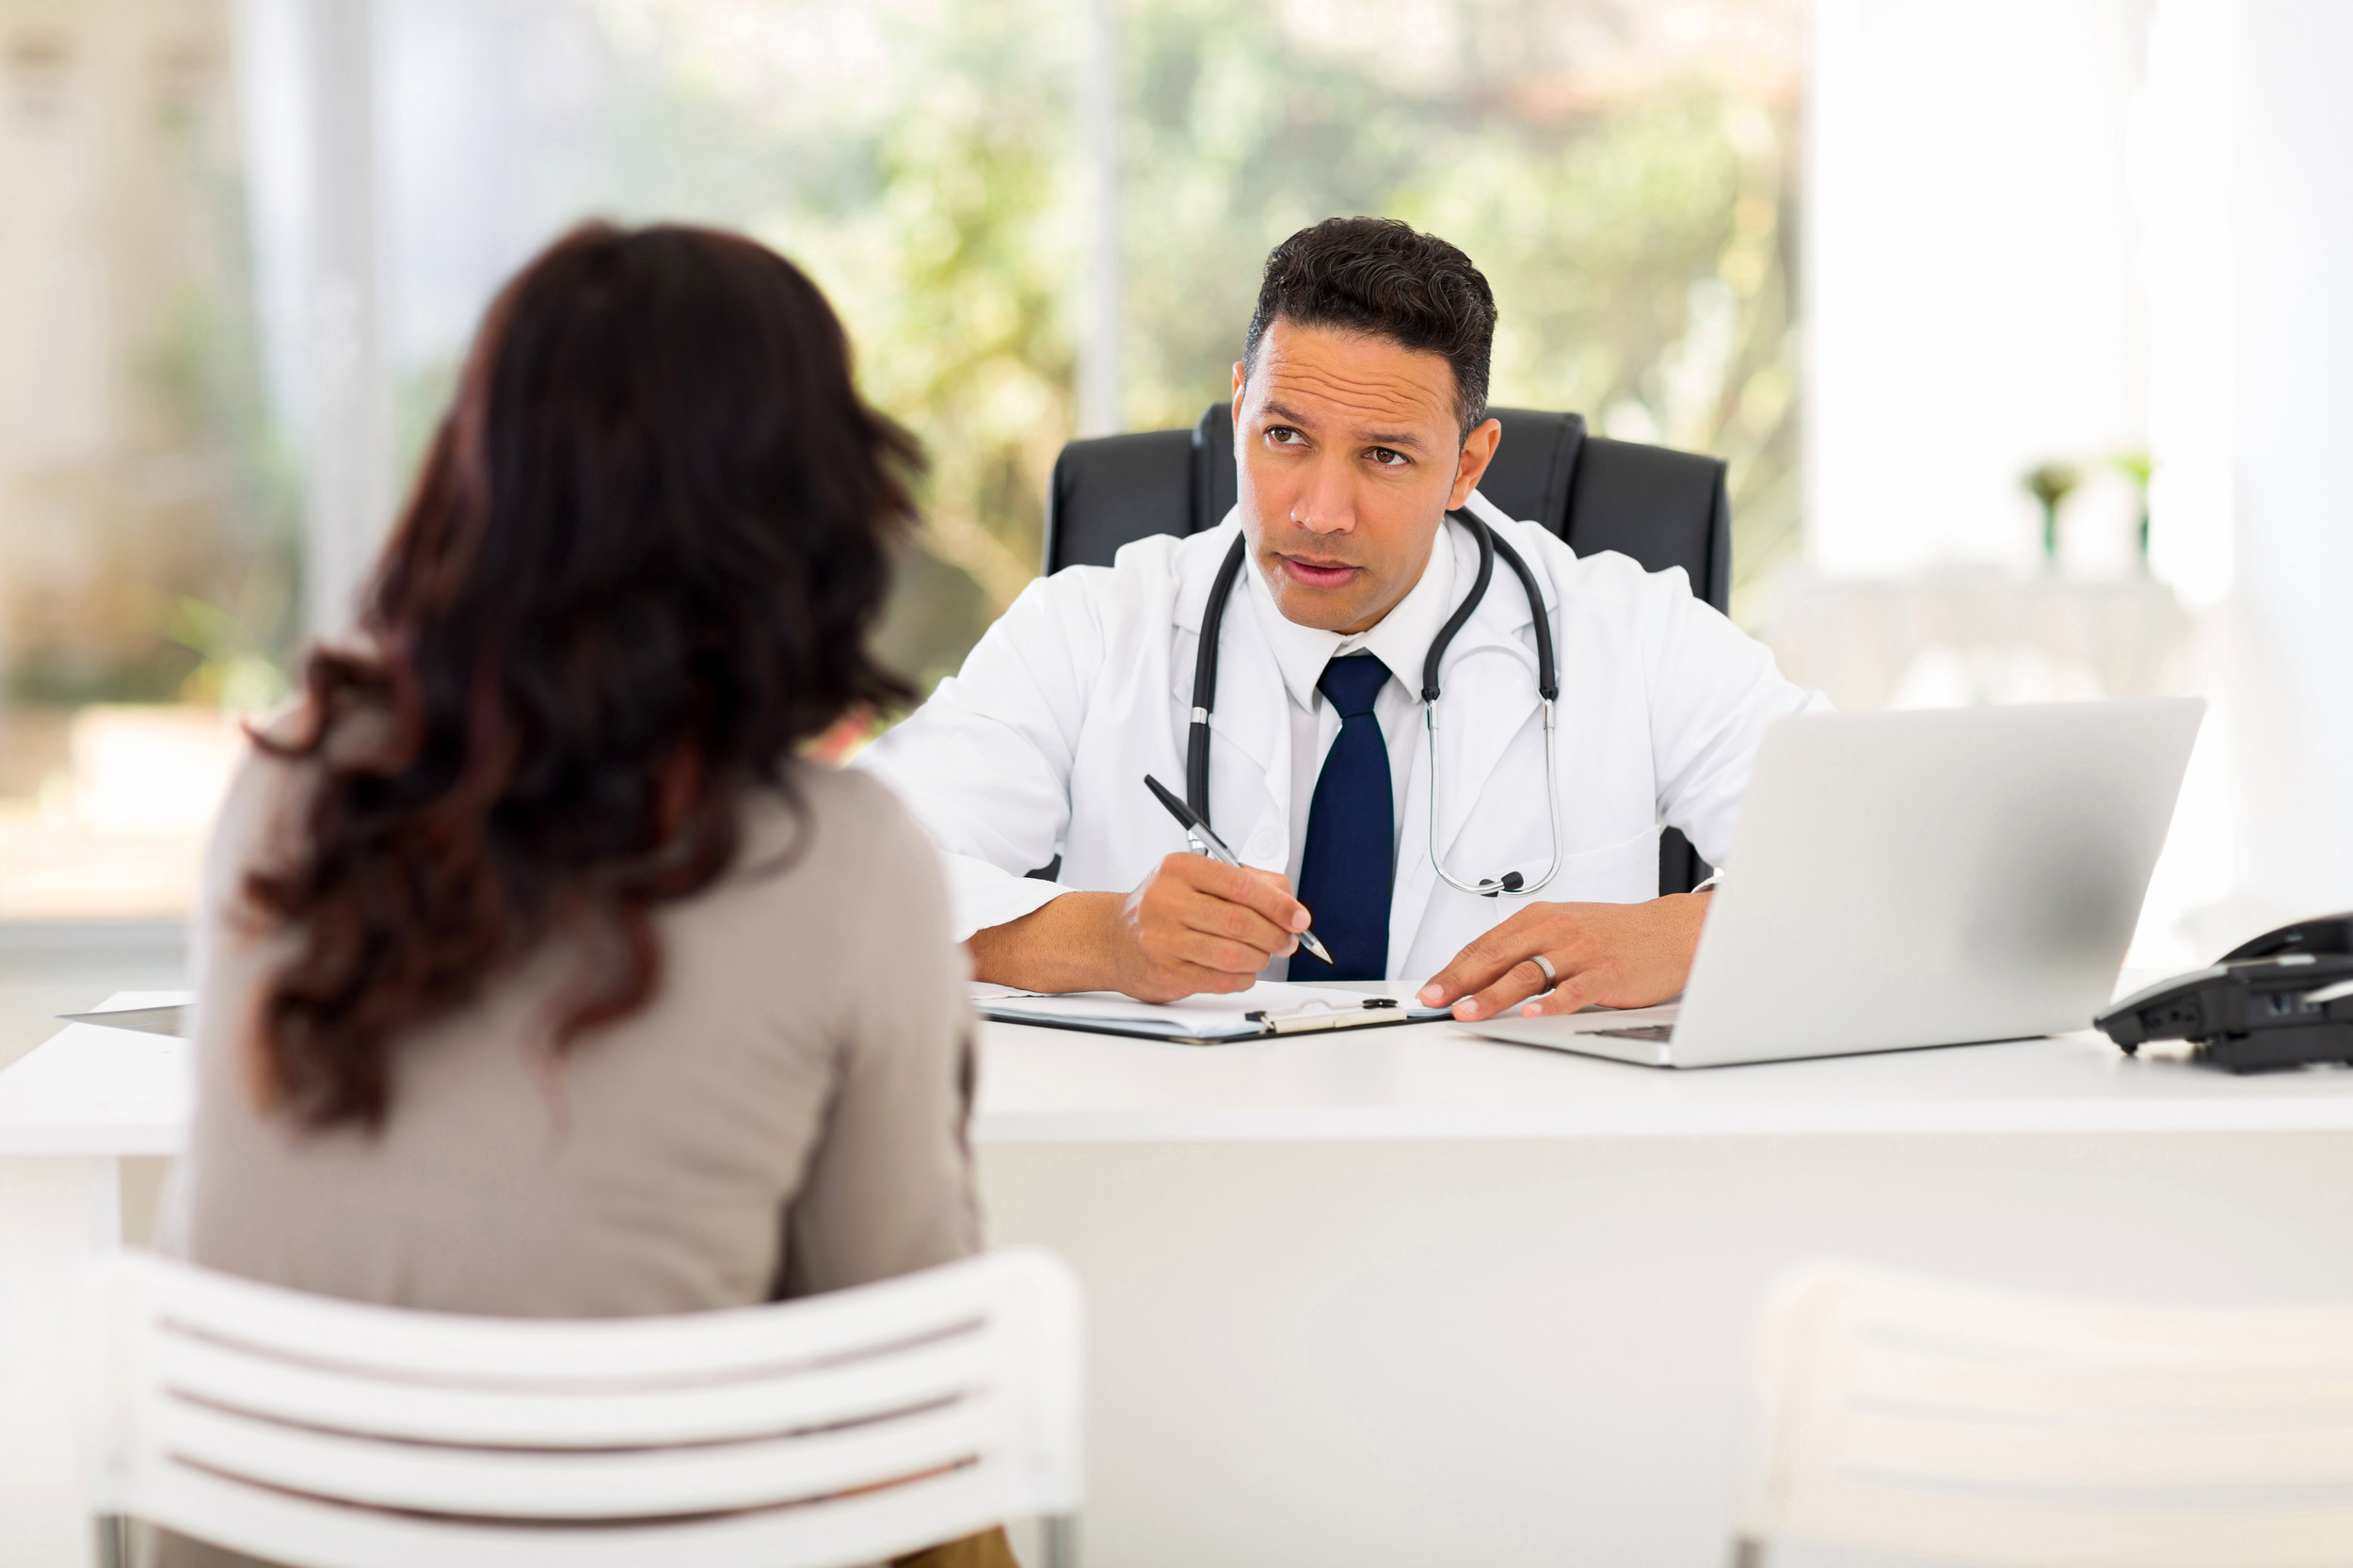 Professional medical doctor consulting with female patient in office, encouraging physician patient interaction